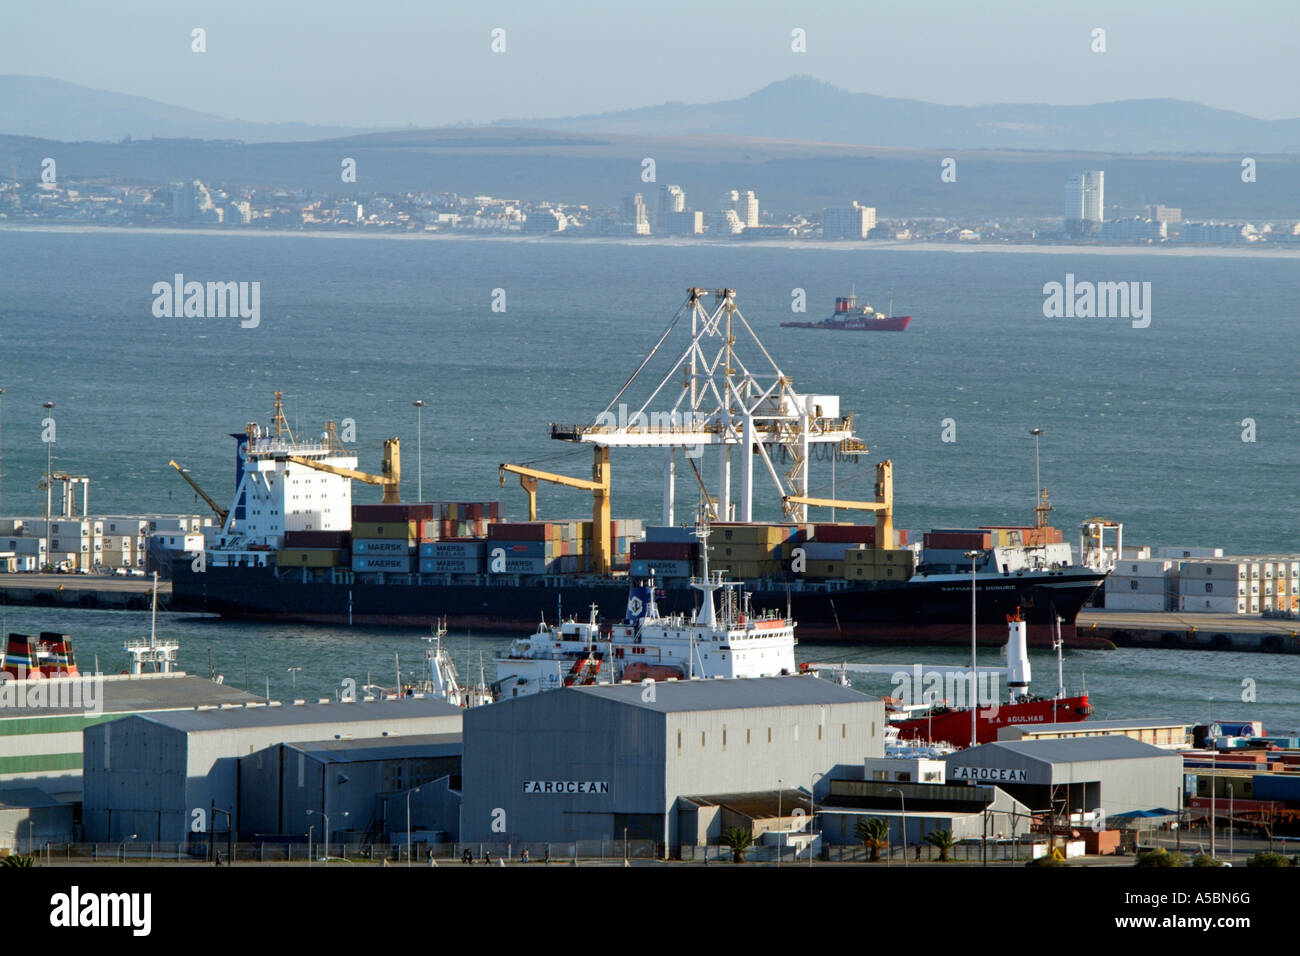 Port of Cape Town South Africa Safmarine Gonubie container ship Stock Photo